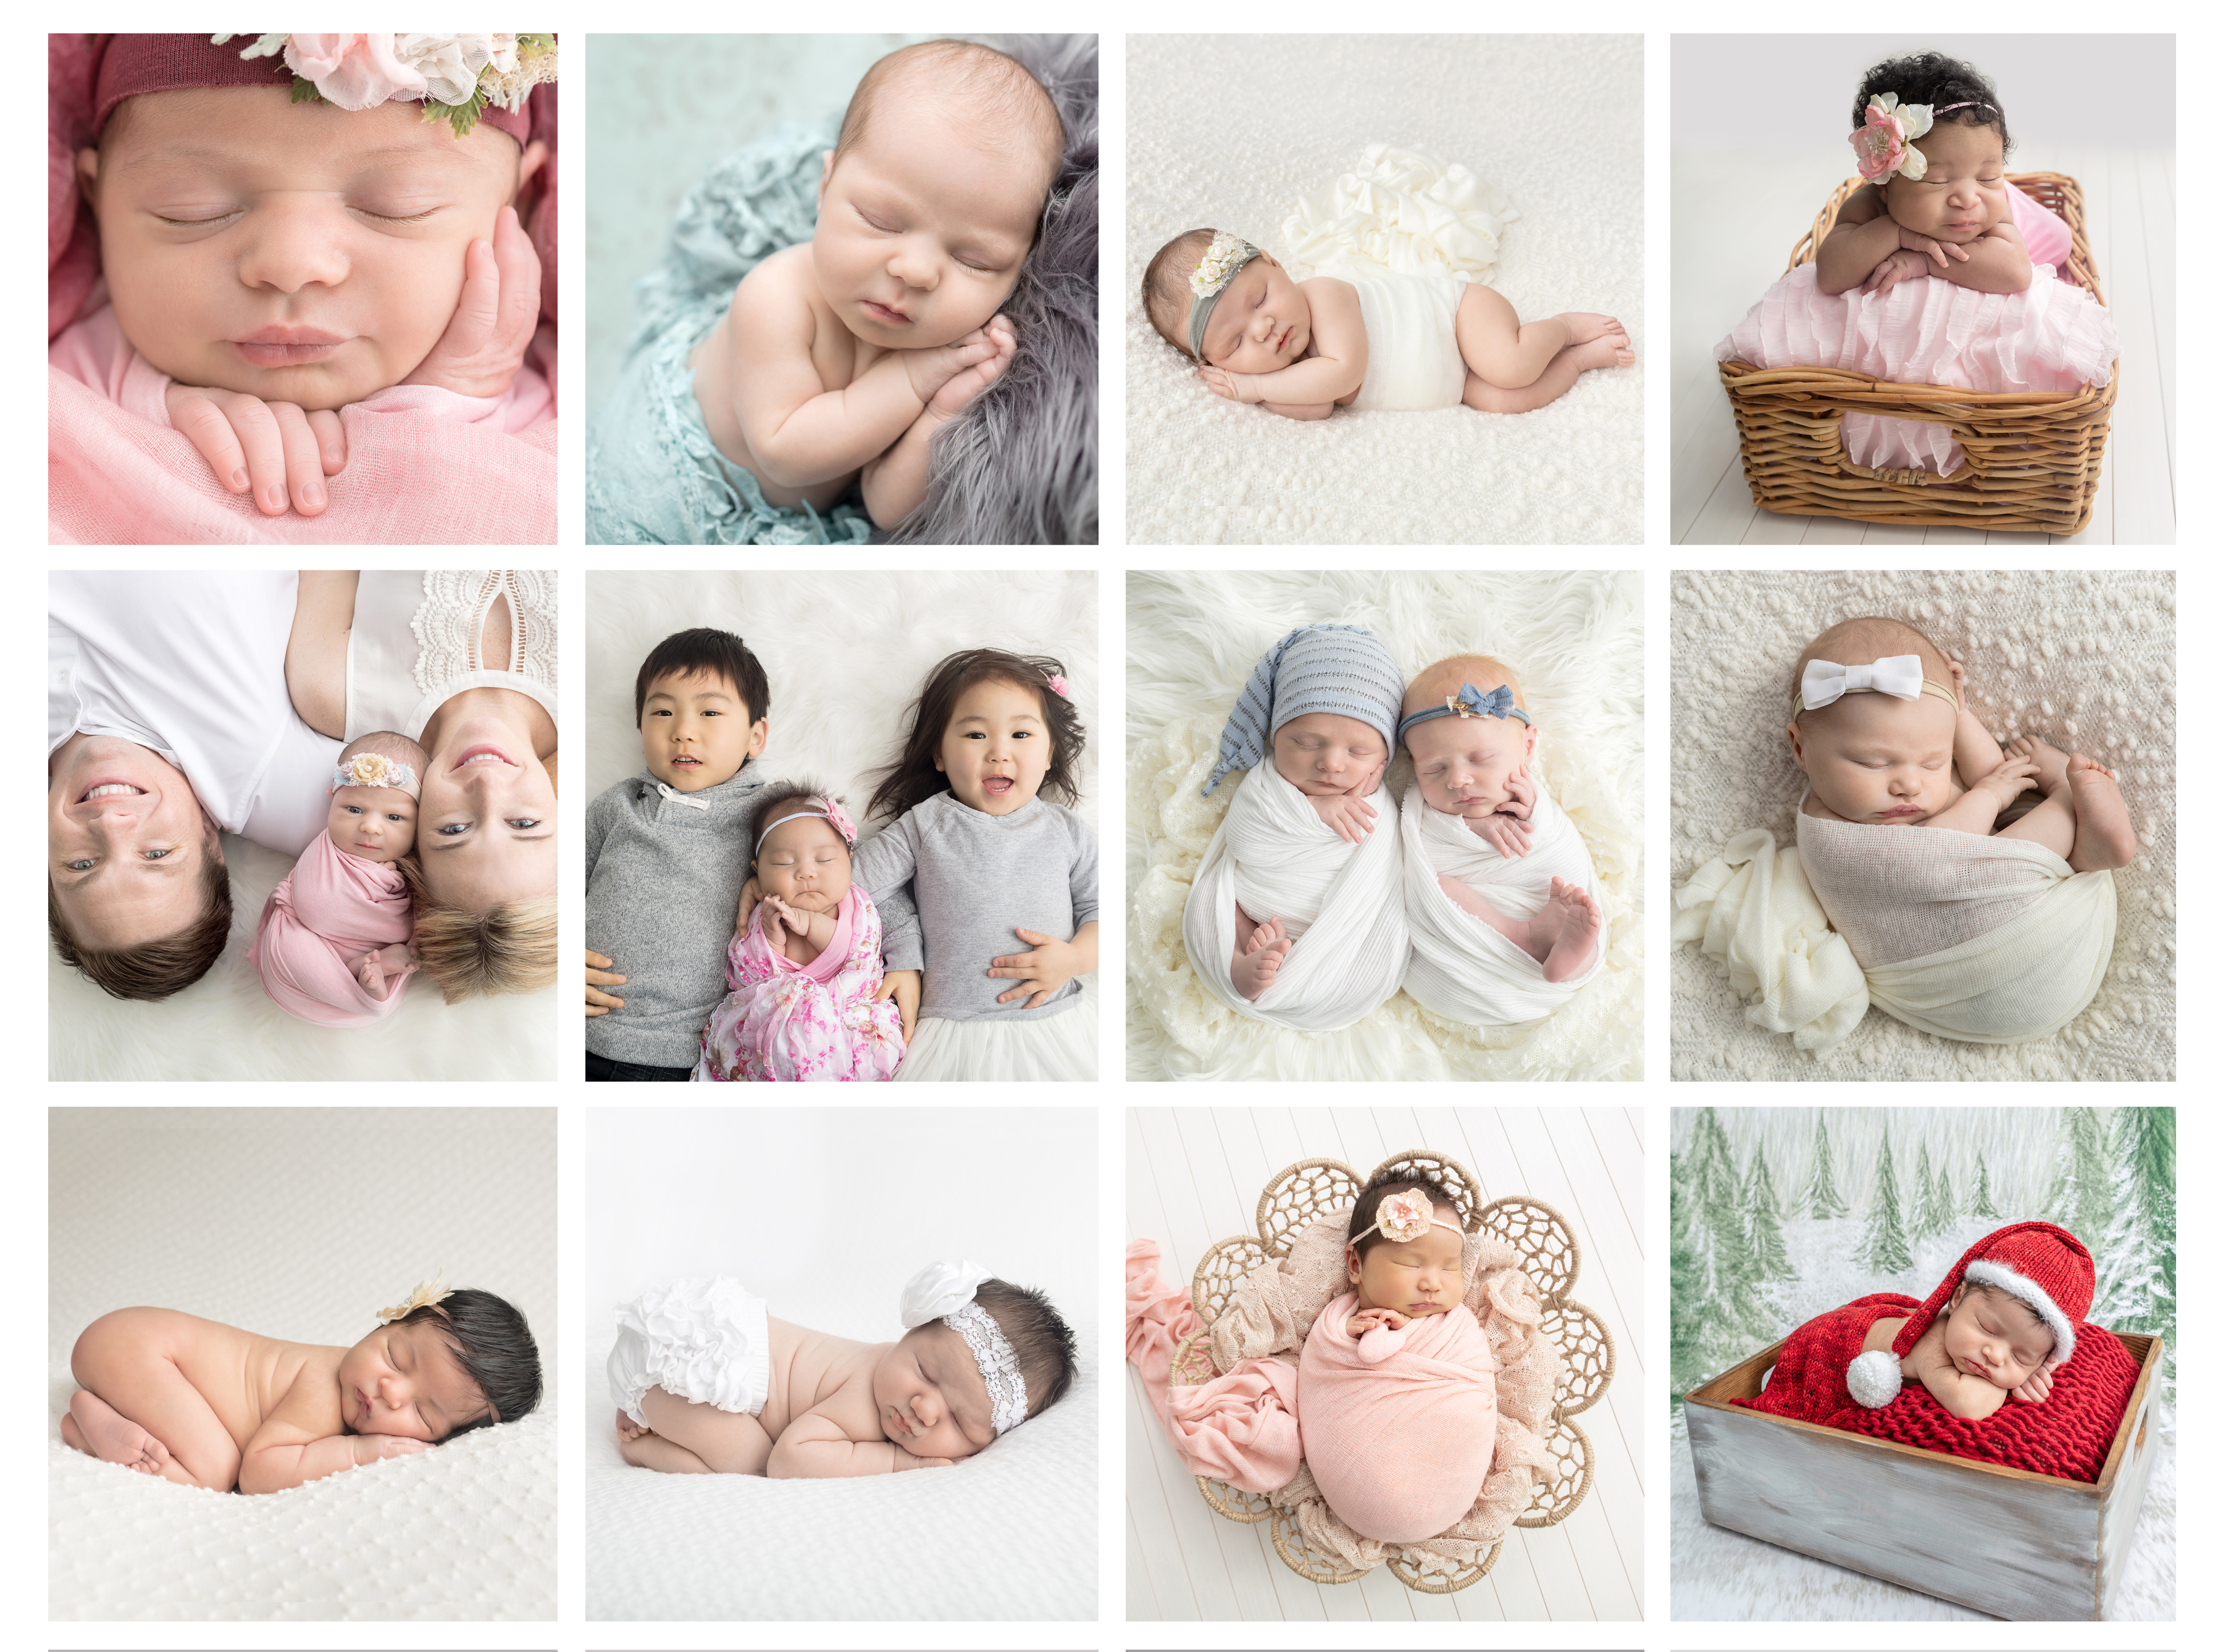 2021 Acredidation Posed Newborn